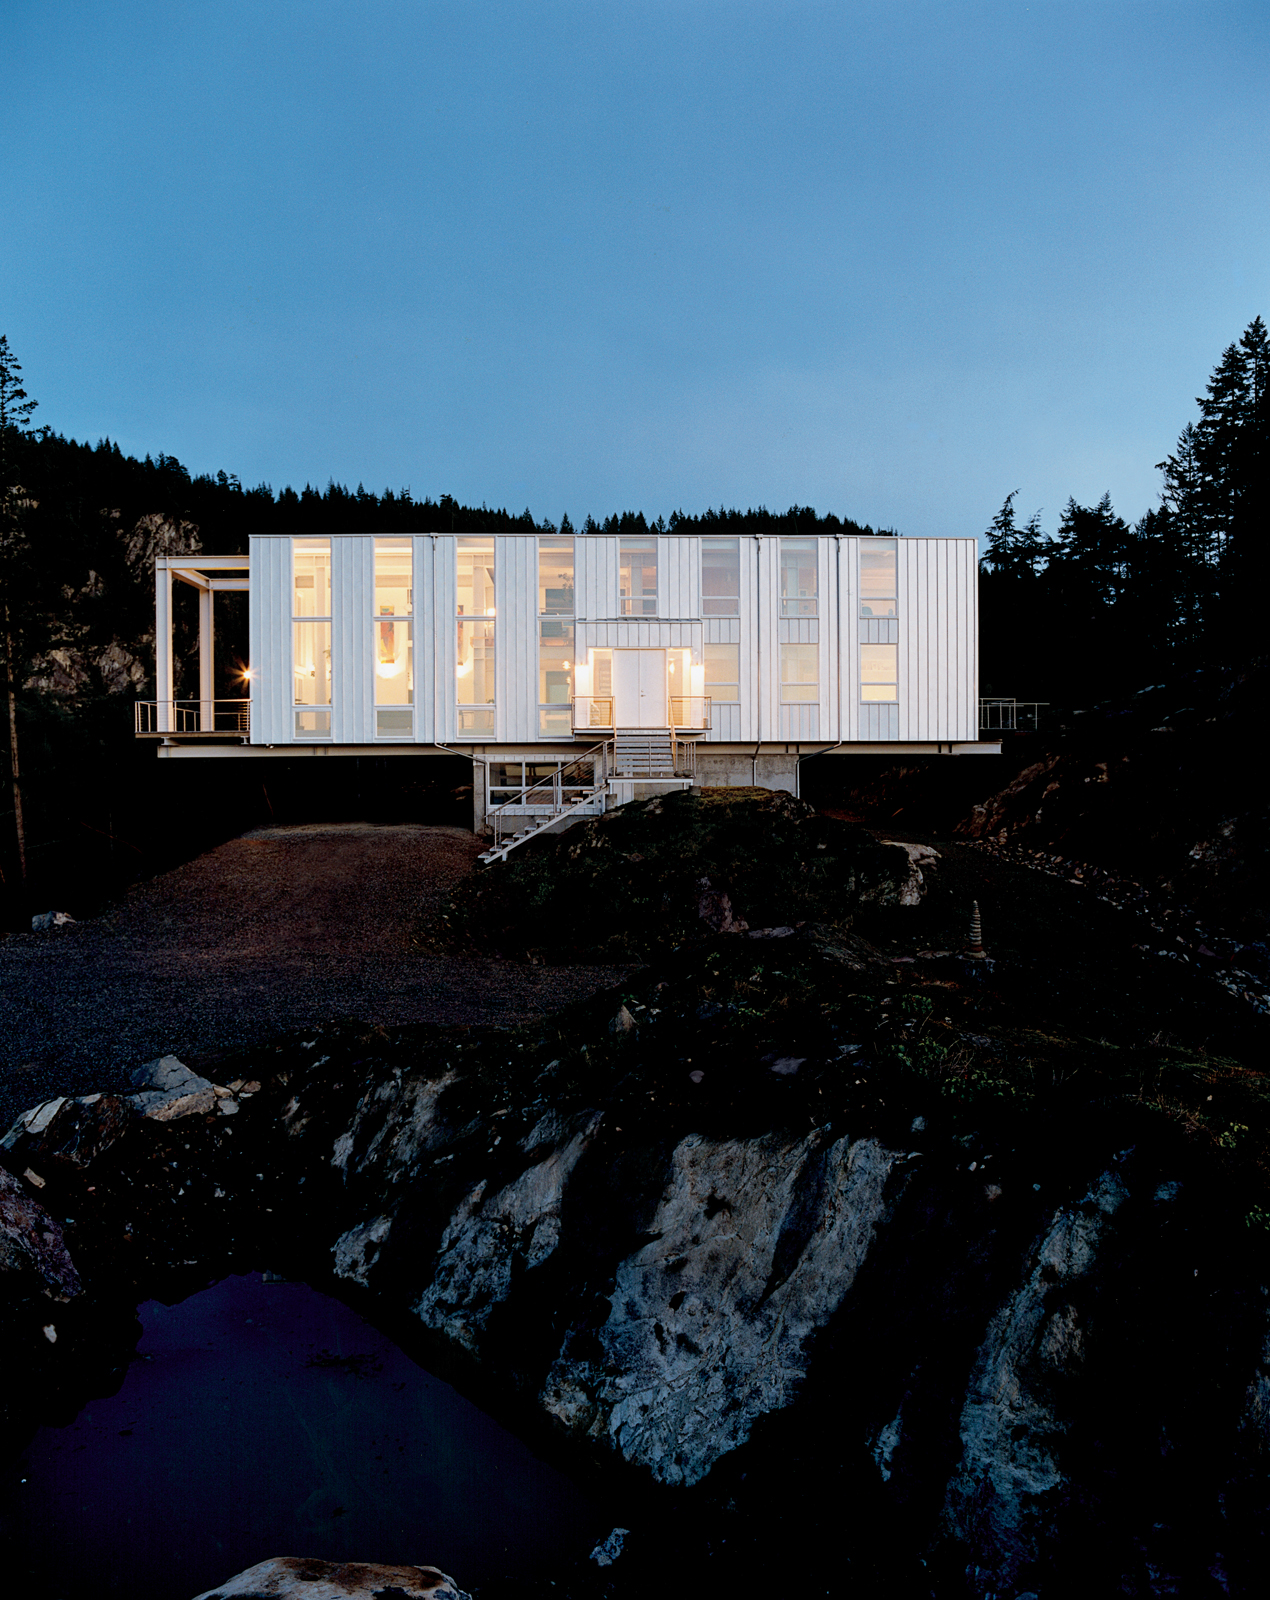 Looking like a jewel box at dusk, Scott Stafne's Cantilever House rests easy in the middle of the Washington woods. With miles of hiking trails, lakes, and waterfalls to explore, Stafne's property provides almost unlimited opportunity for outdoor adventur